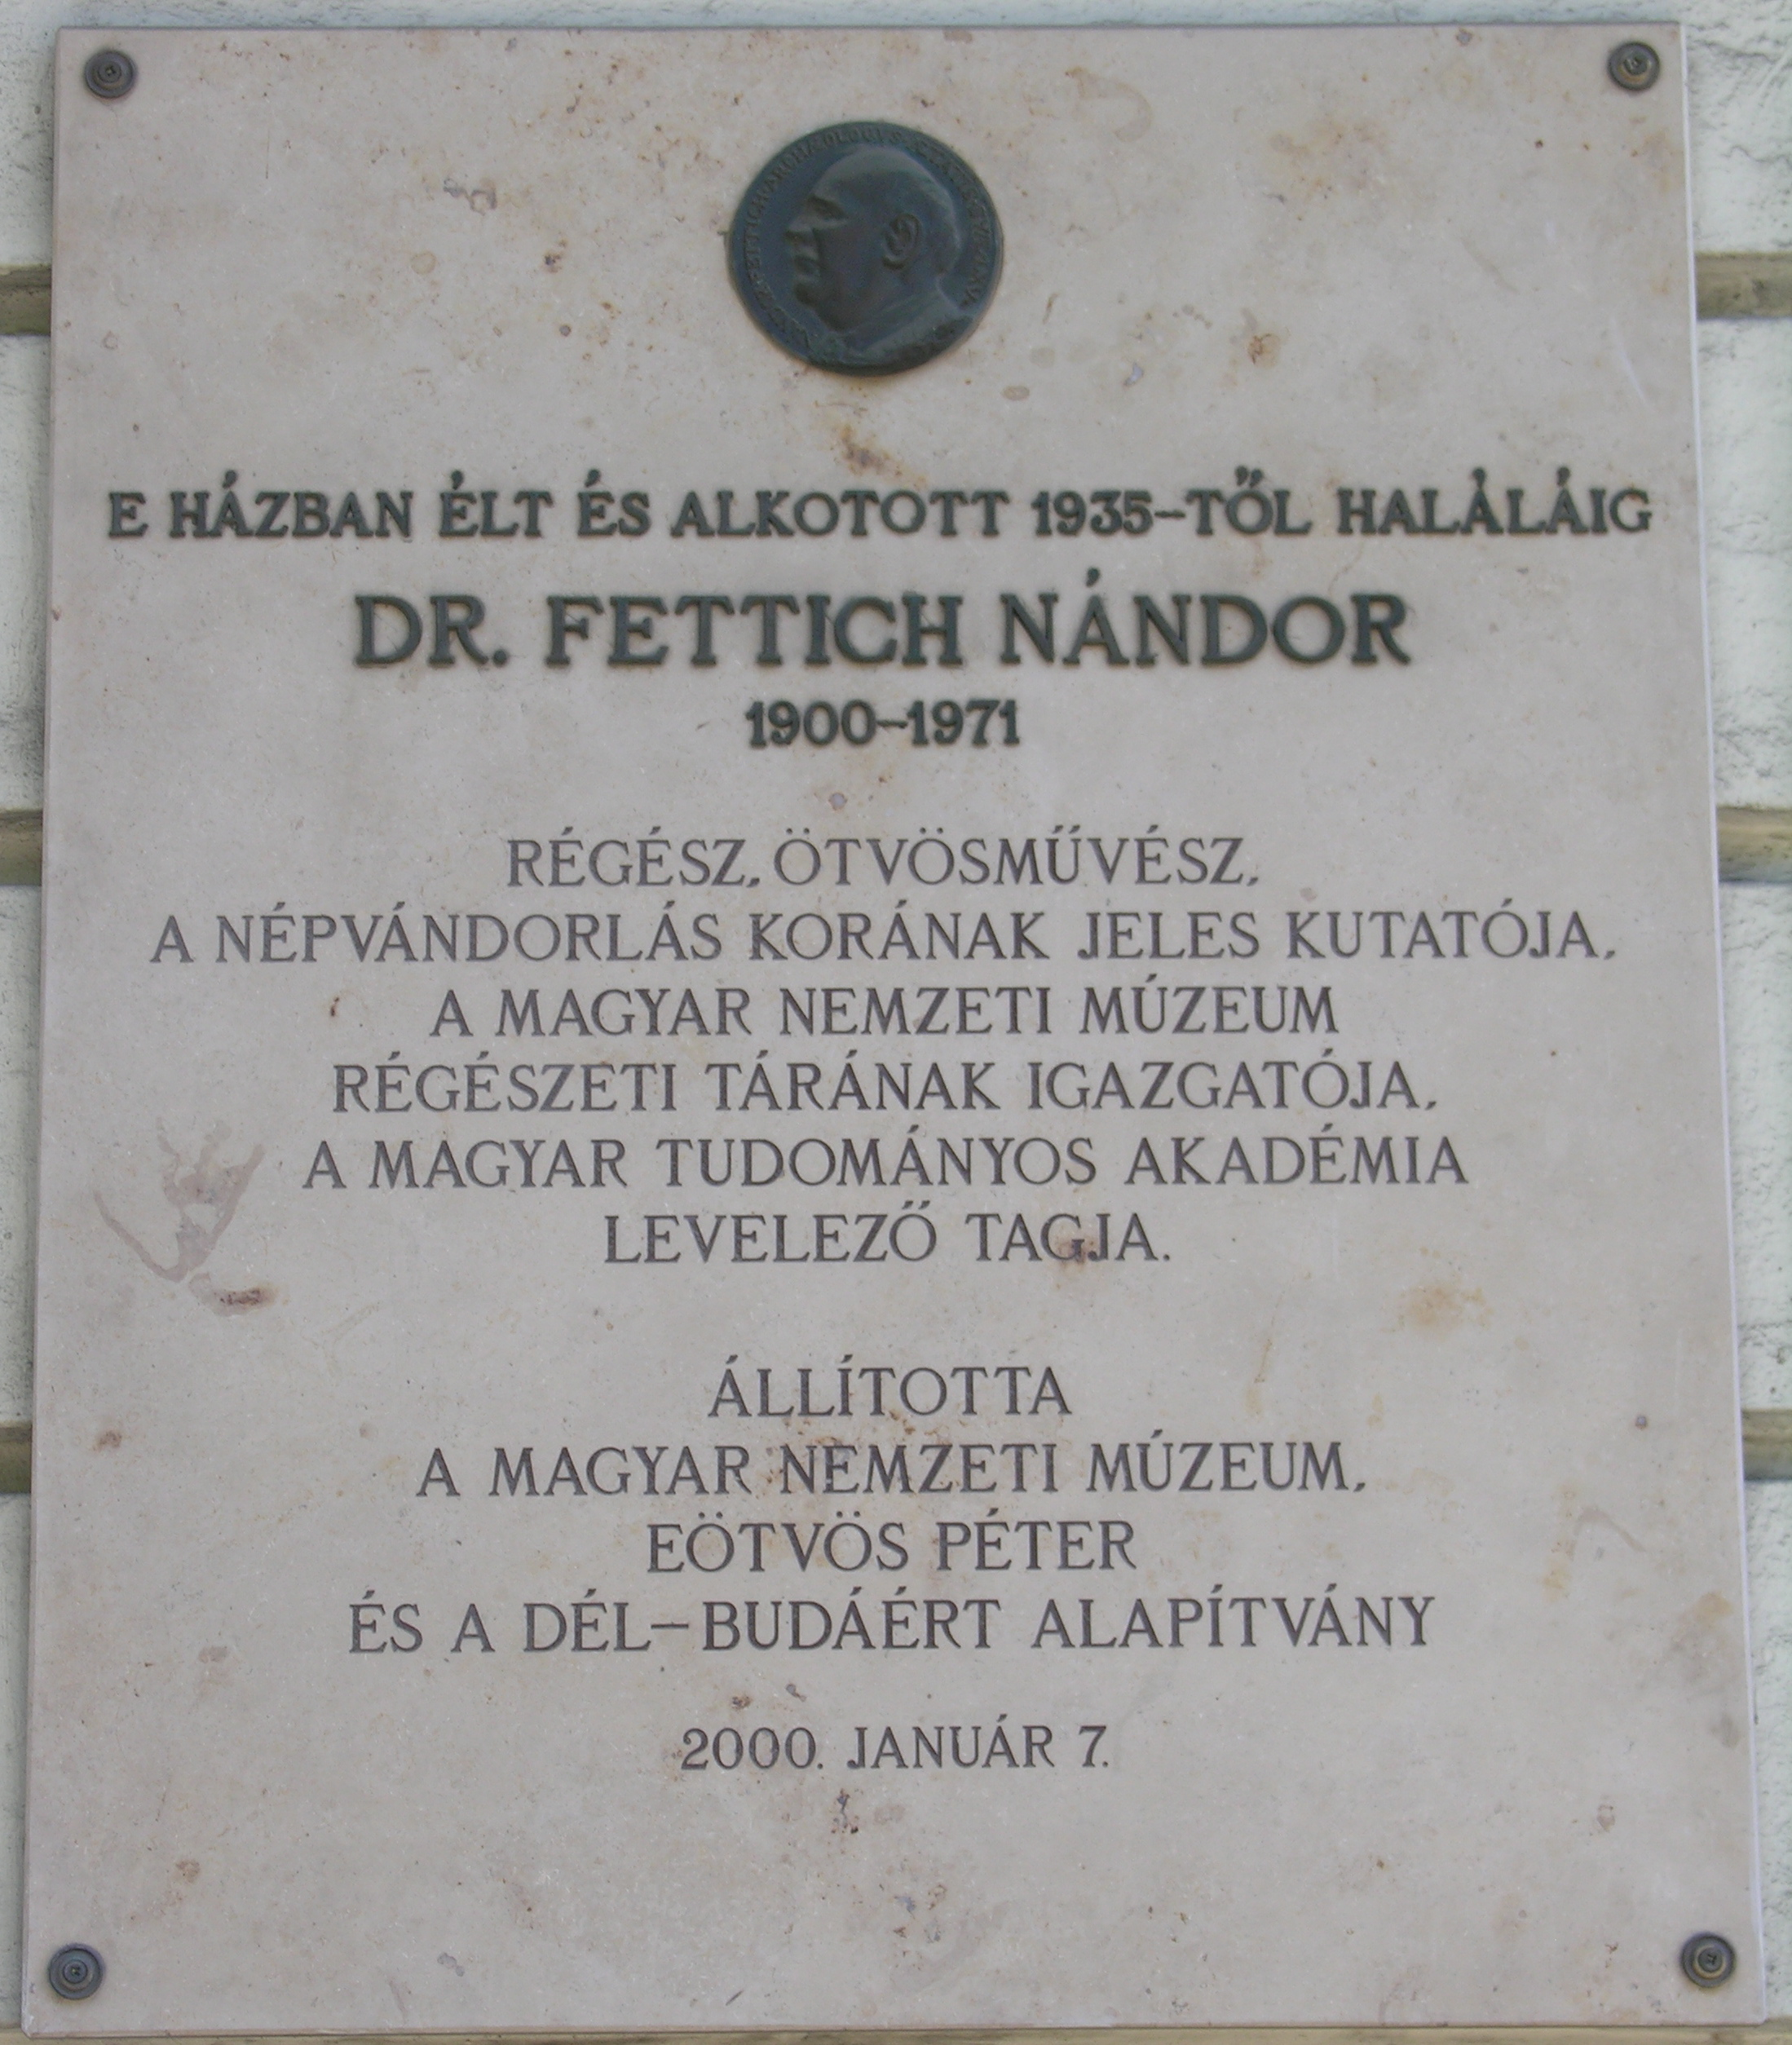 Tombstone of Nándor Fettich